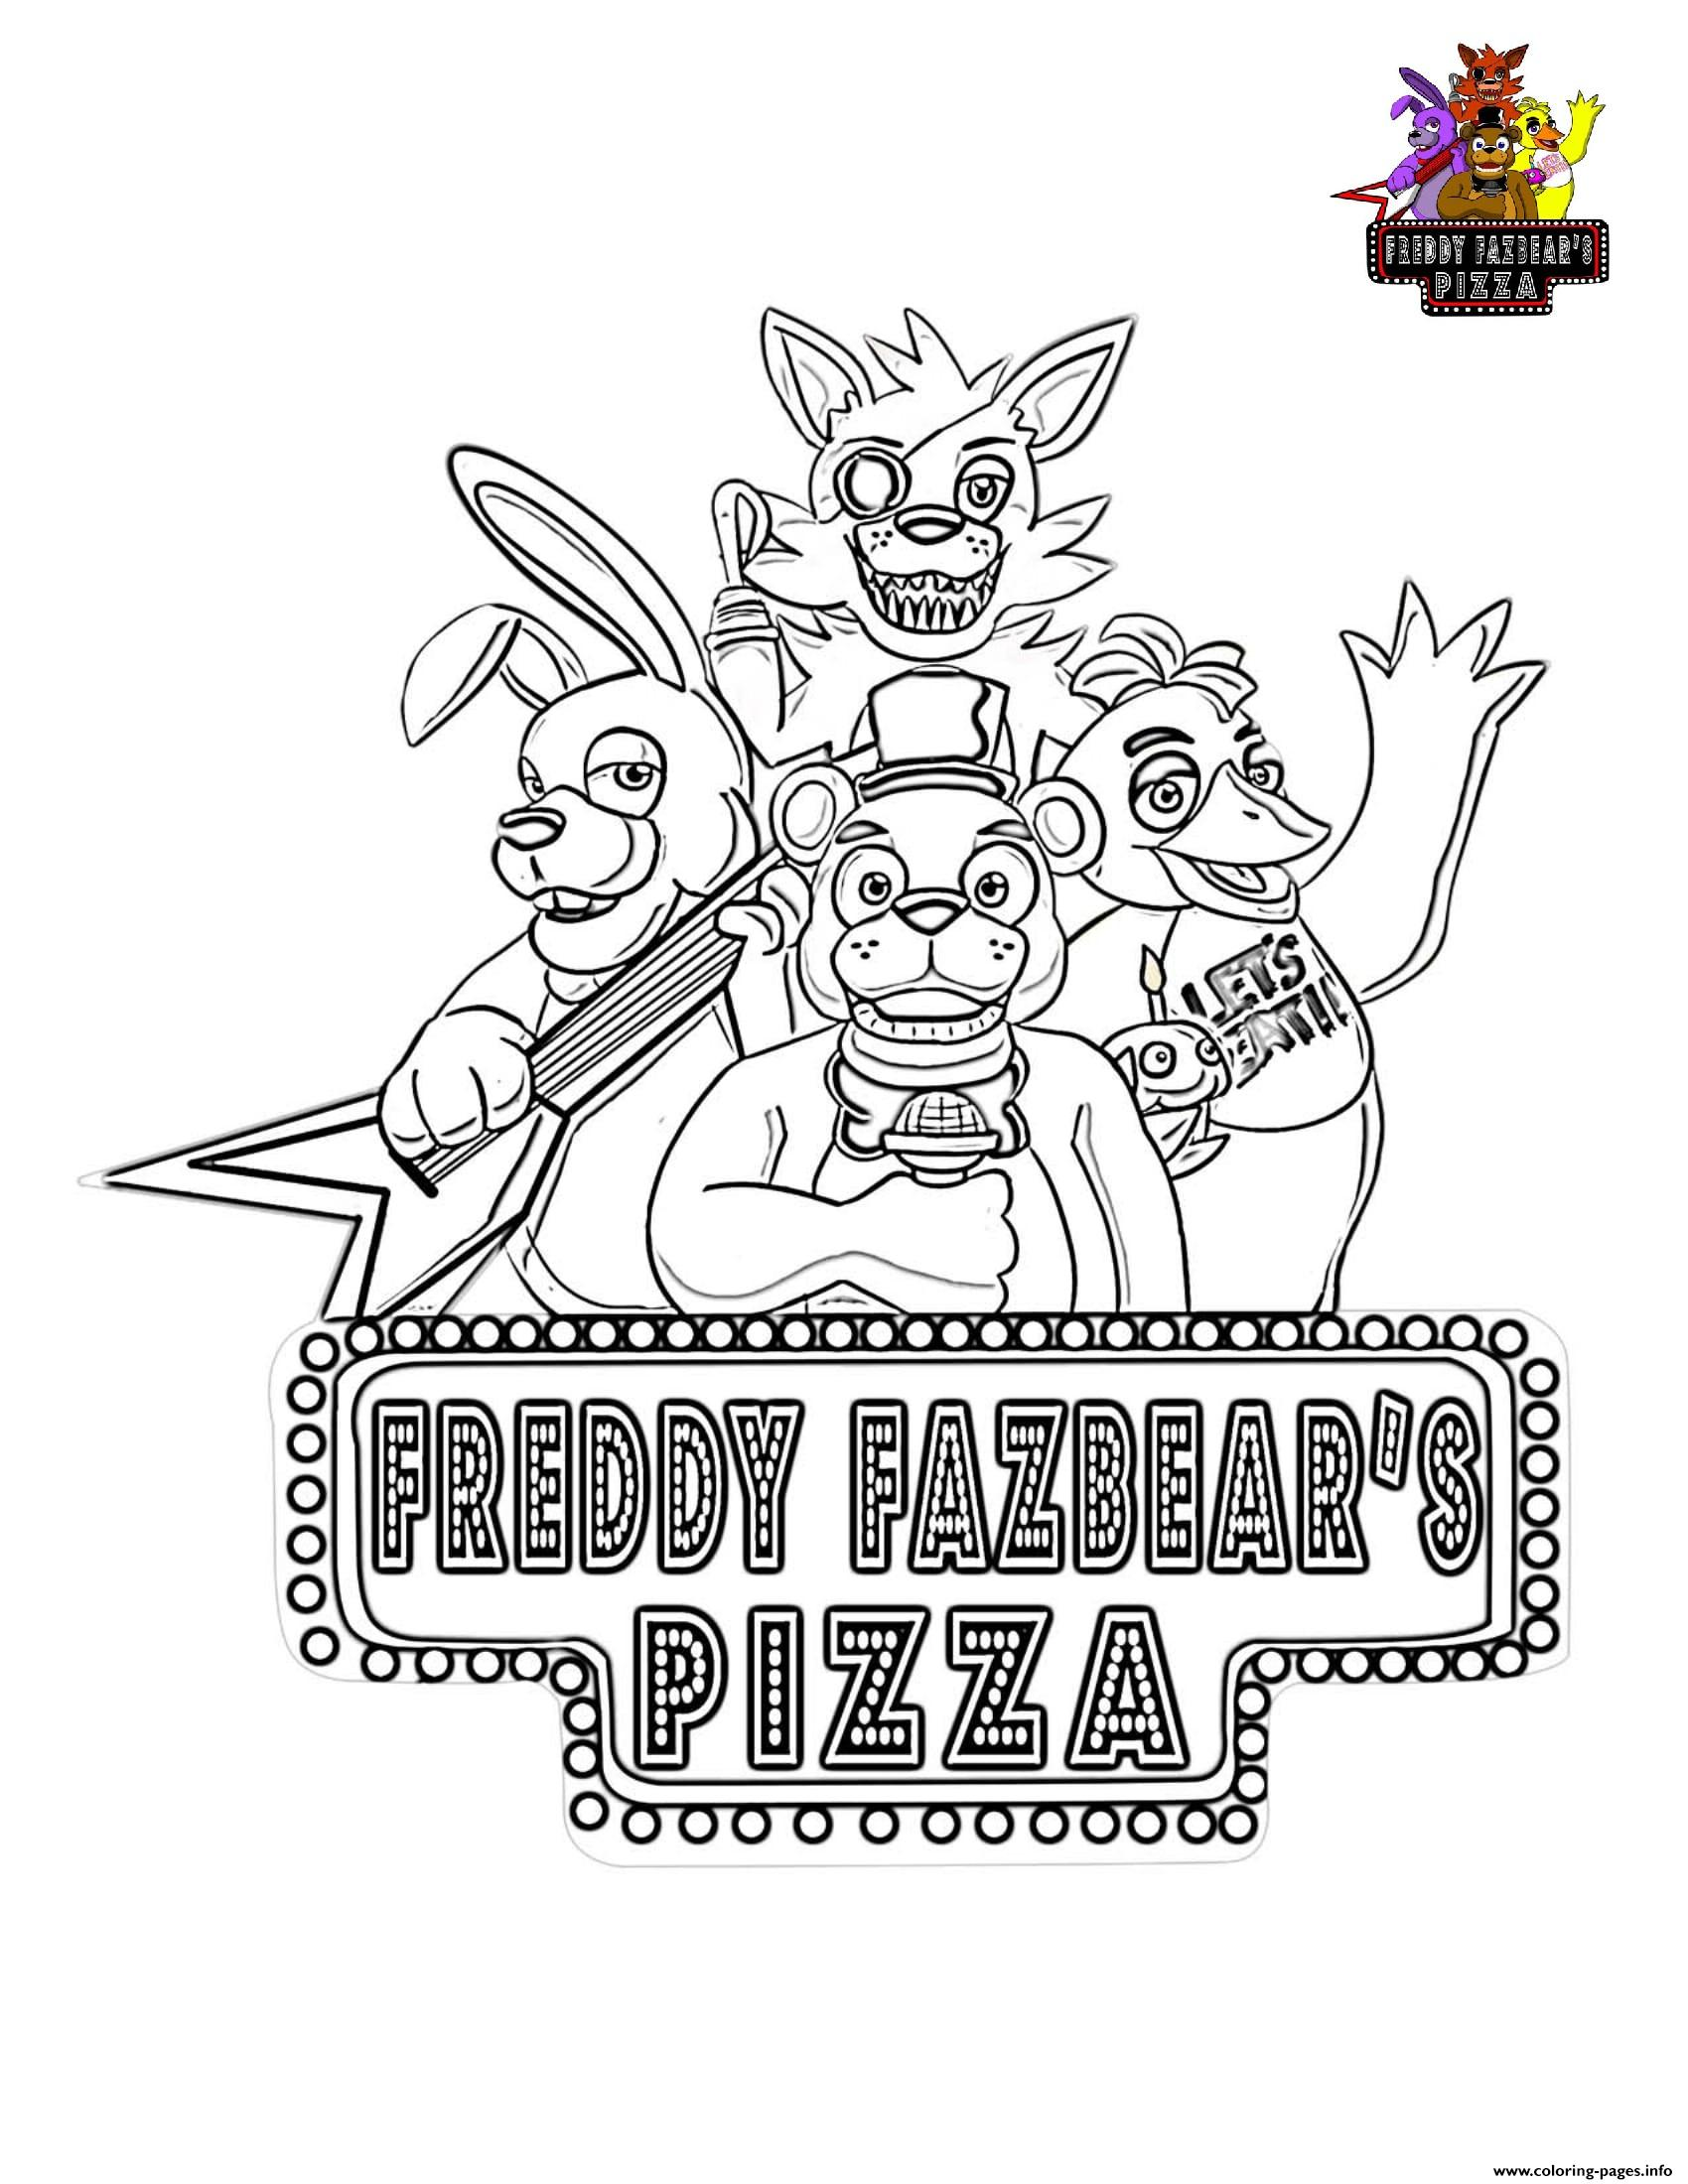 fnaf coloring pages printable Five Nights At Freddys FNAF Coloring Pages Printable fnaf coloring pages printable